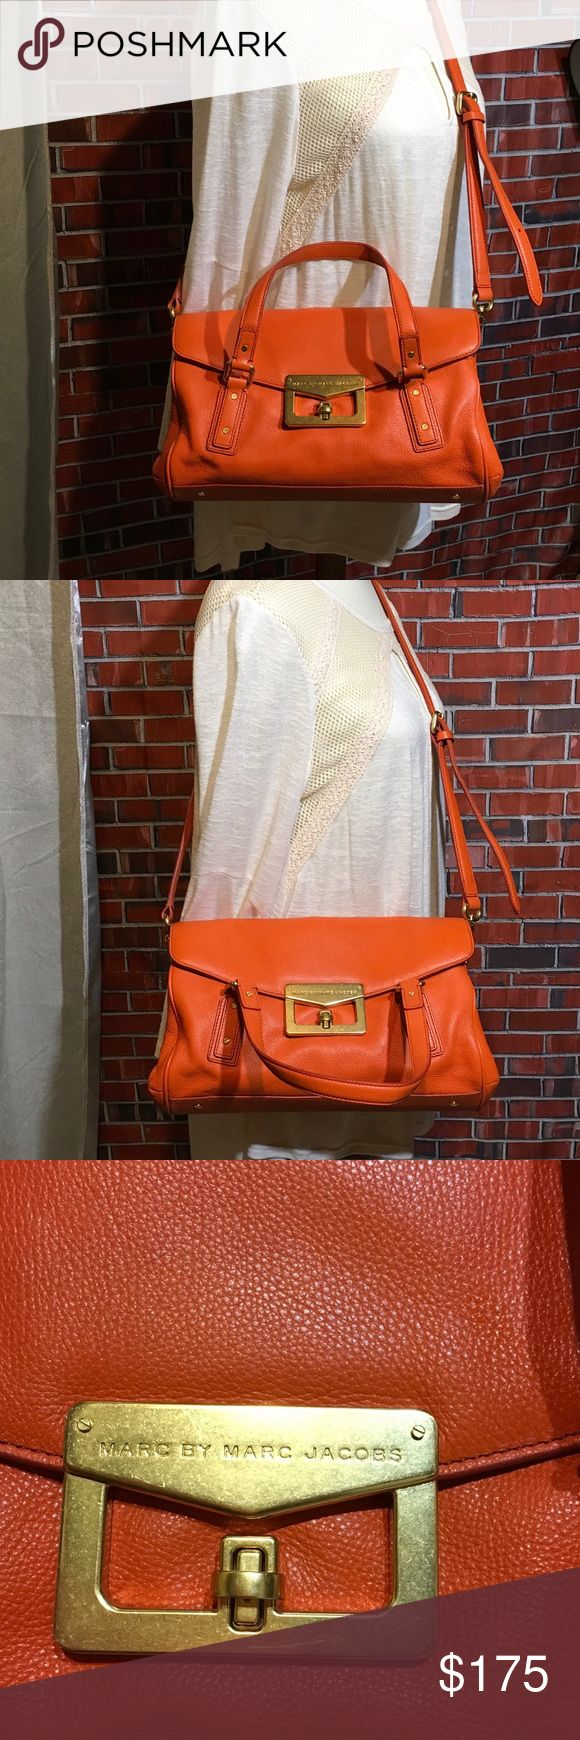 NWT Marc by Marc Jacobs satchel cross body Beautiful orange Italian leather Marc by Marc Jacobs bag. Two handles long adjustable body strap two  pockets inside two zippered pockets inside. Bag has a slight wear from storage (pictured).Bundle for no obligation private discount or send me your offer. Ten percent discount on 2+ items. Any questions don't has to take to ask Marc By Marc Jacobs Bags Satchels